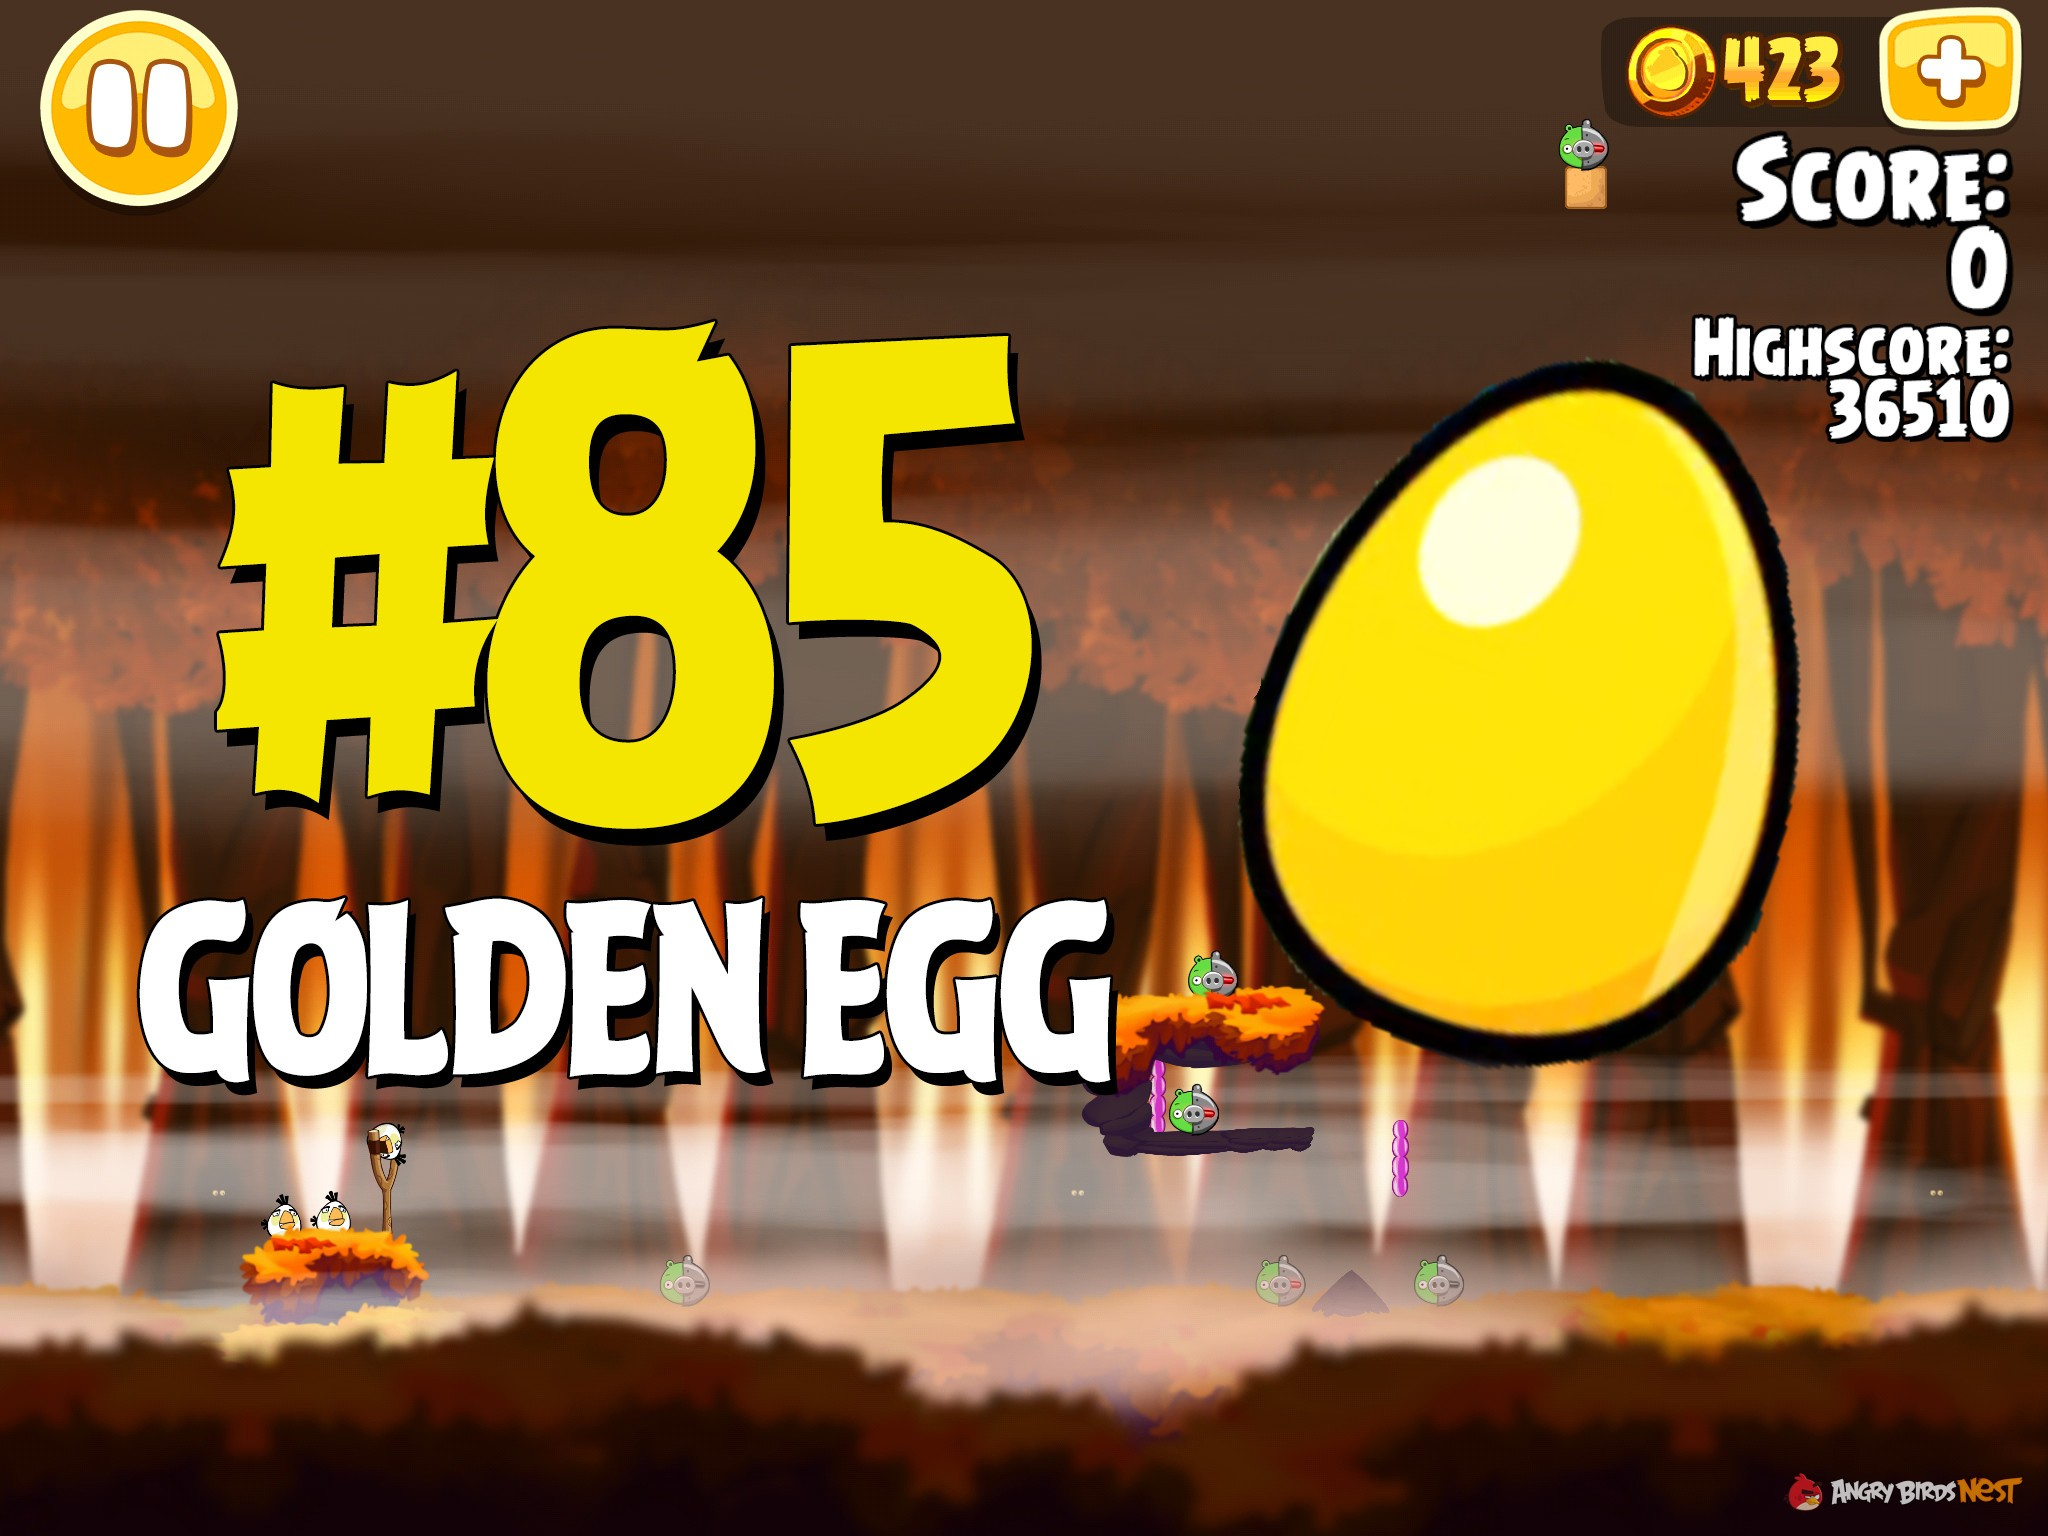 Angry Birds Hammier Things angry birds seasons hammier things golden egg #85